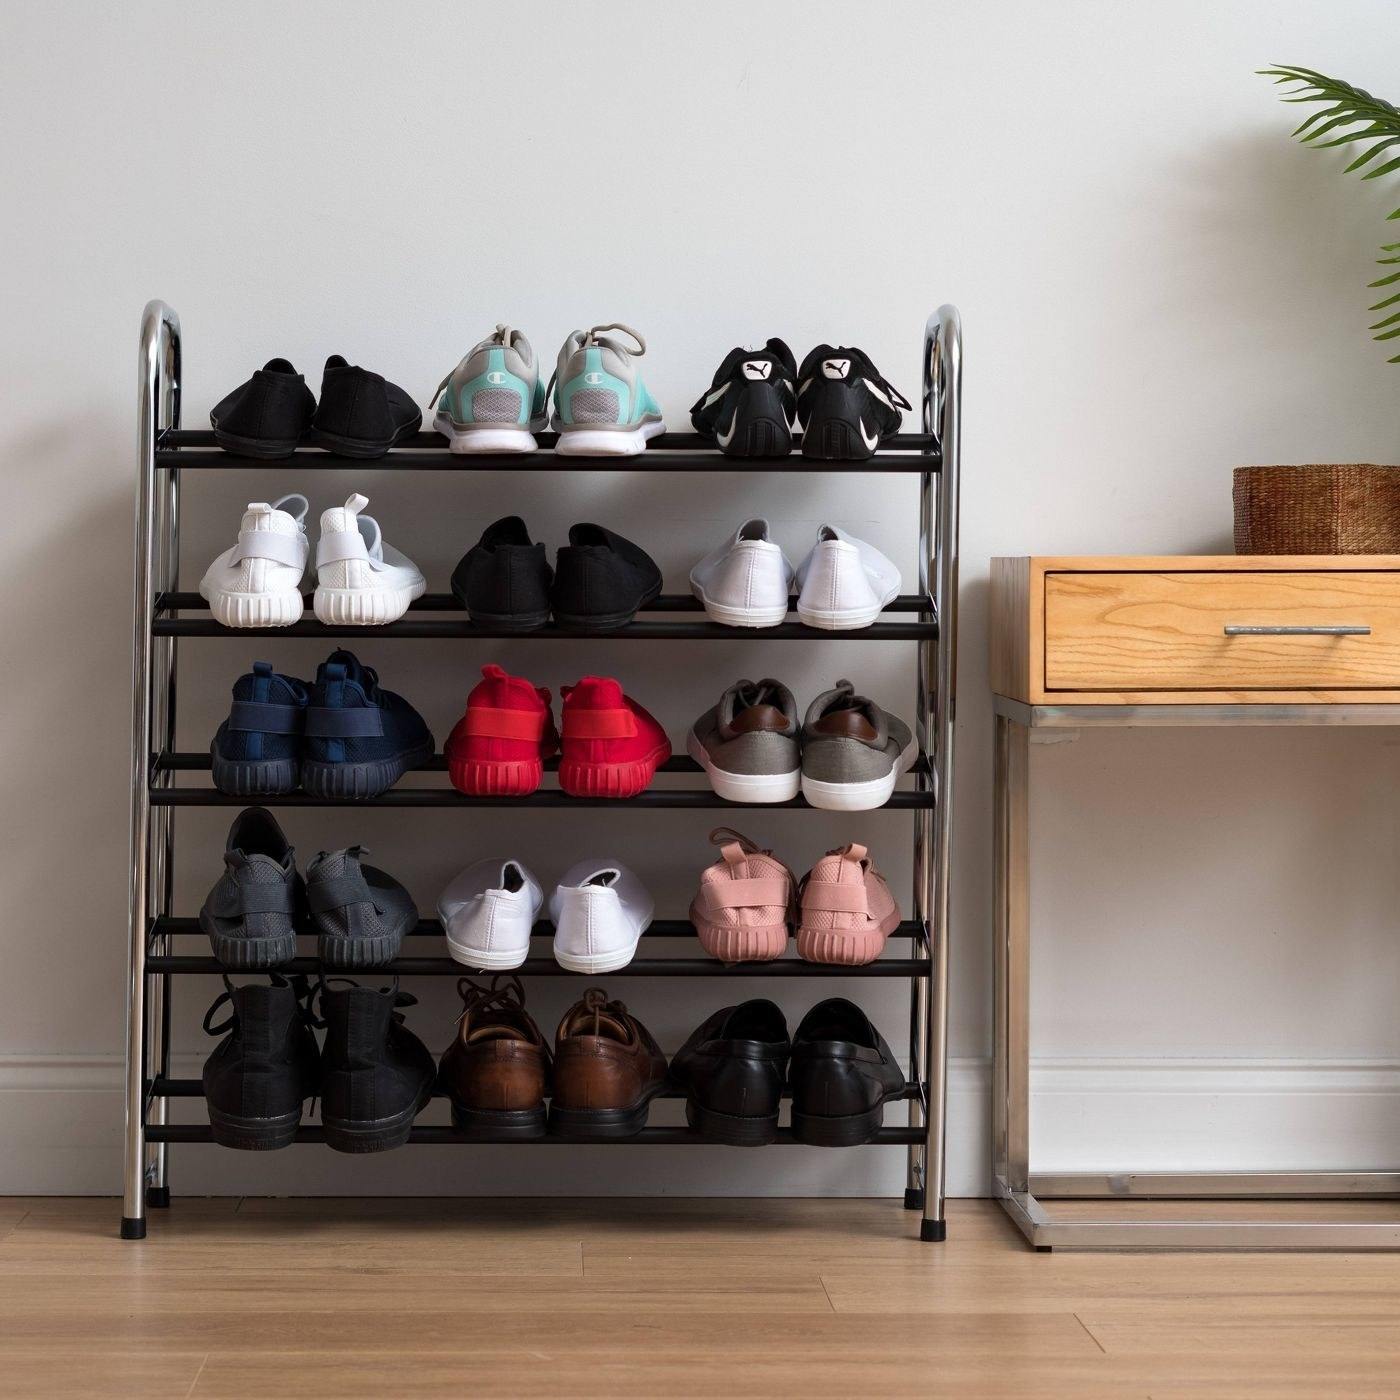 tennis shoes on a metal shoe rack